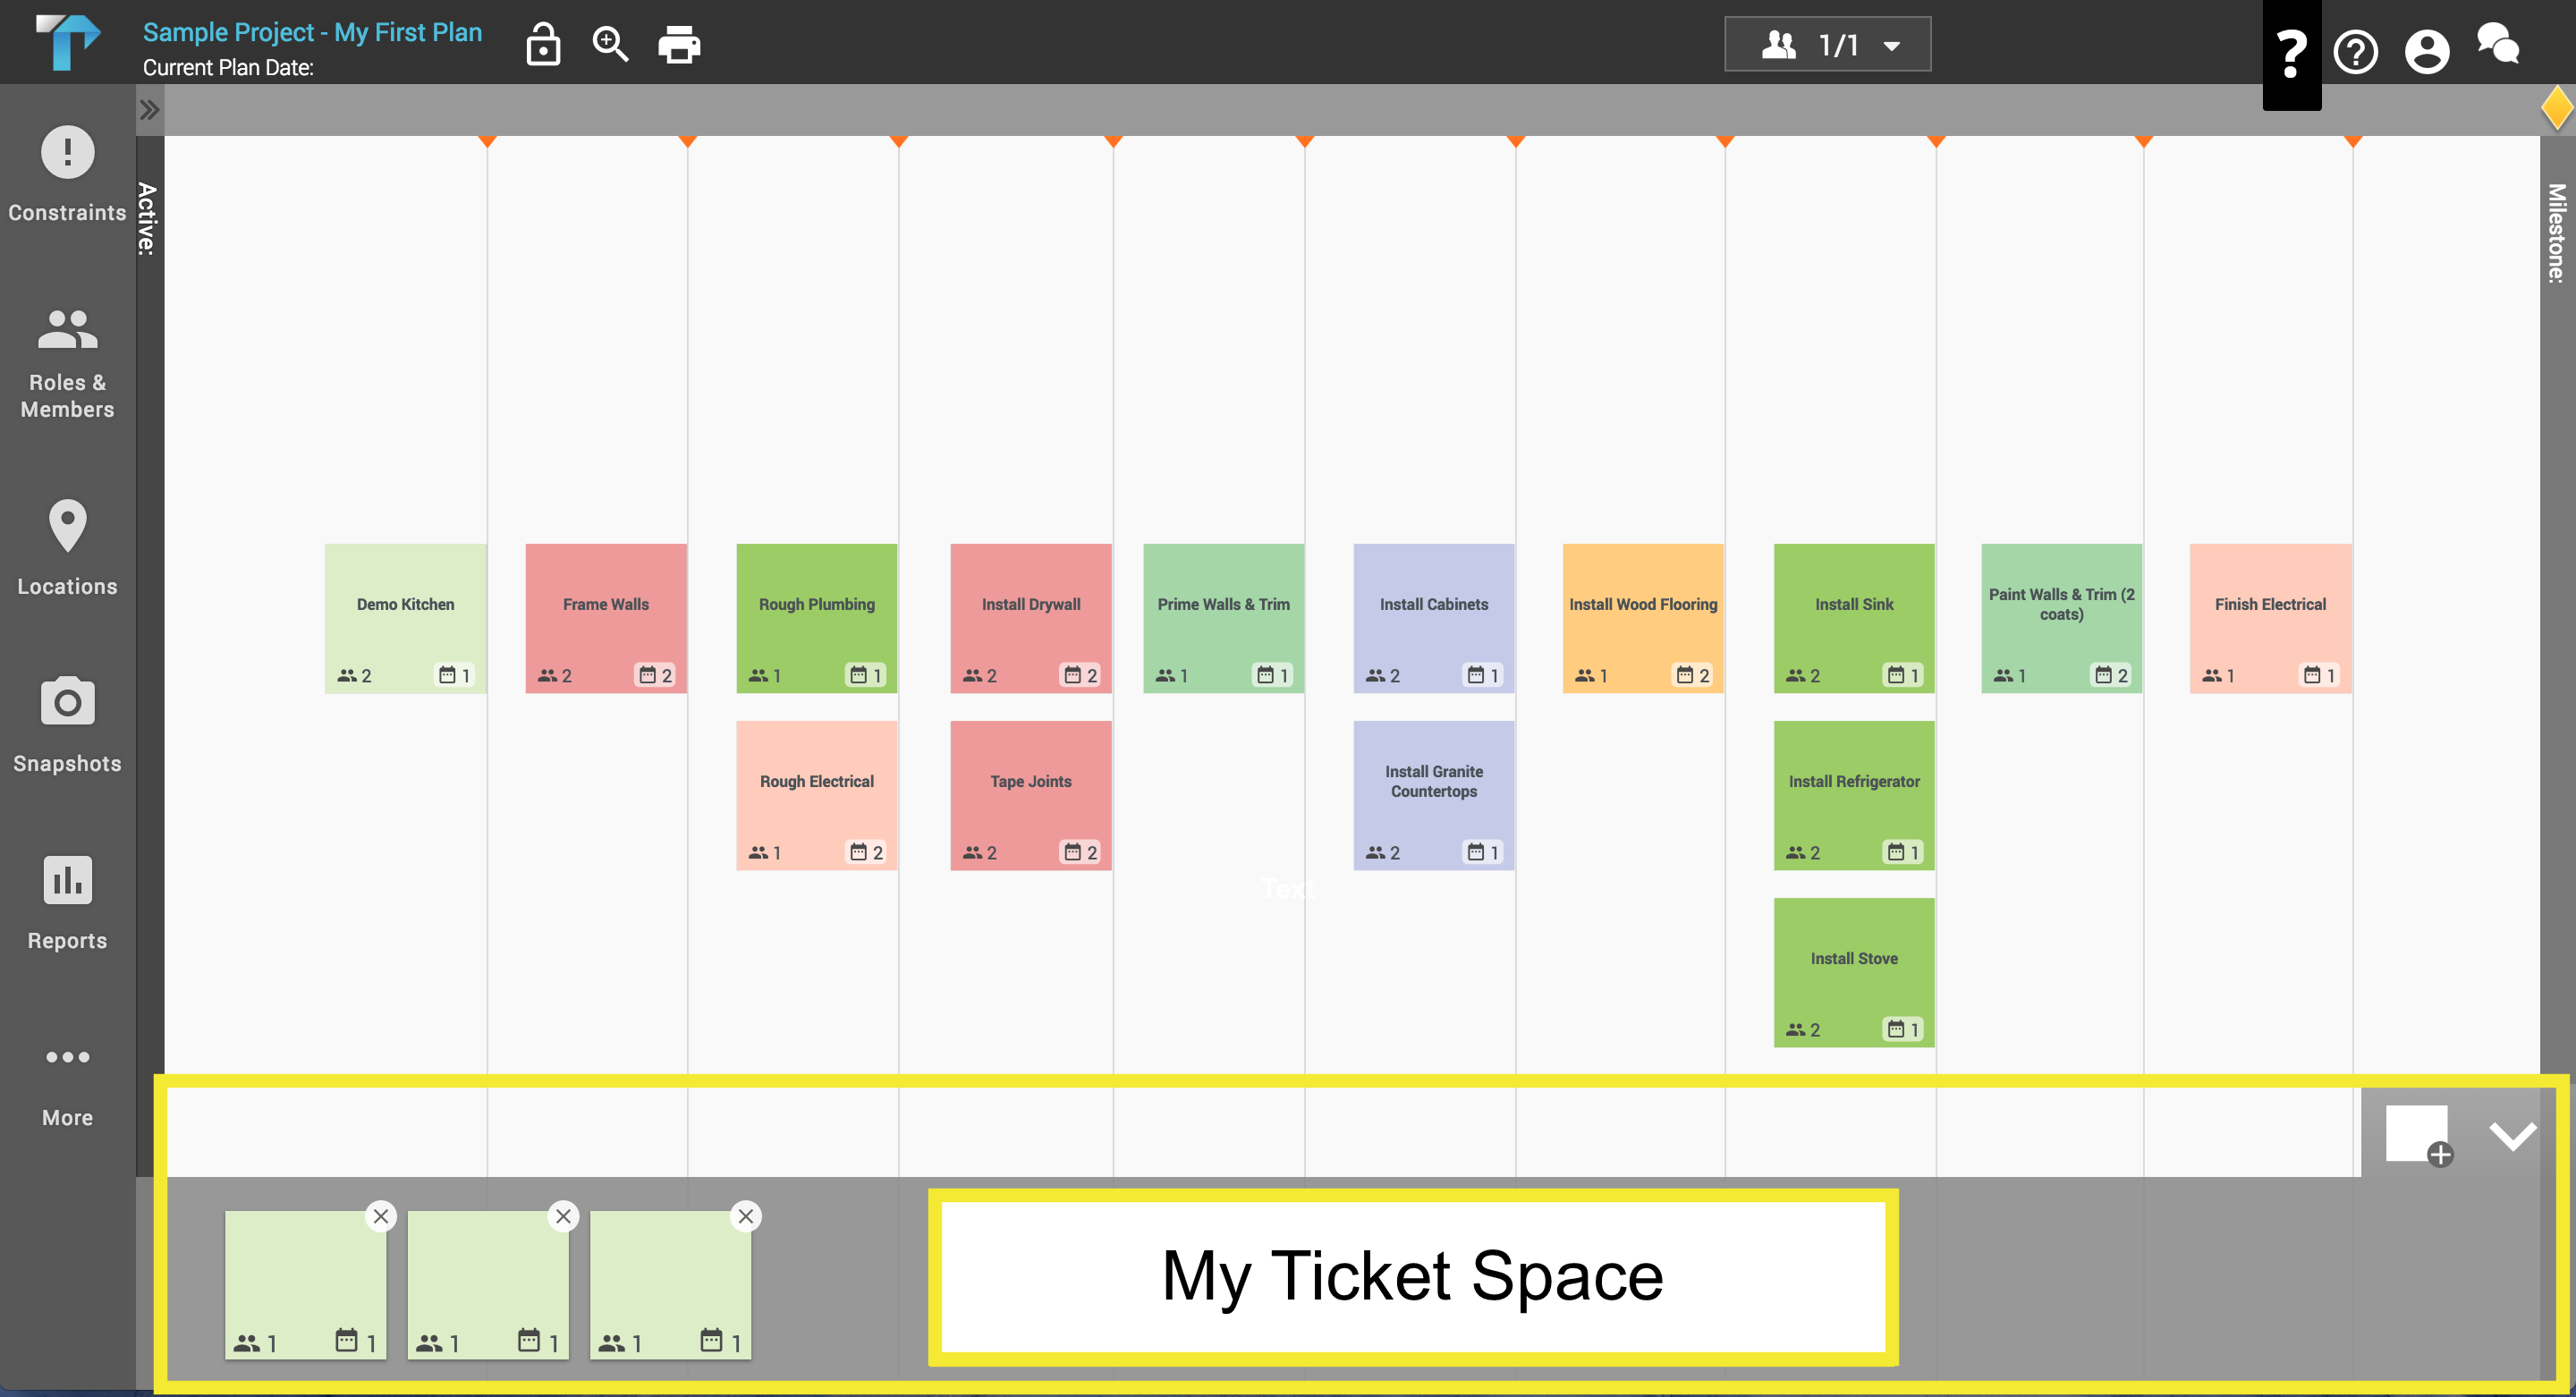 My_Ticket_Space.png